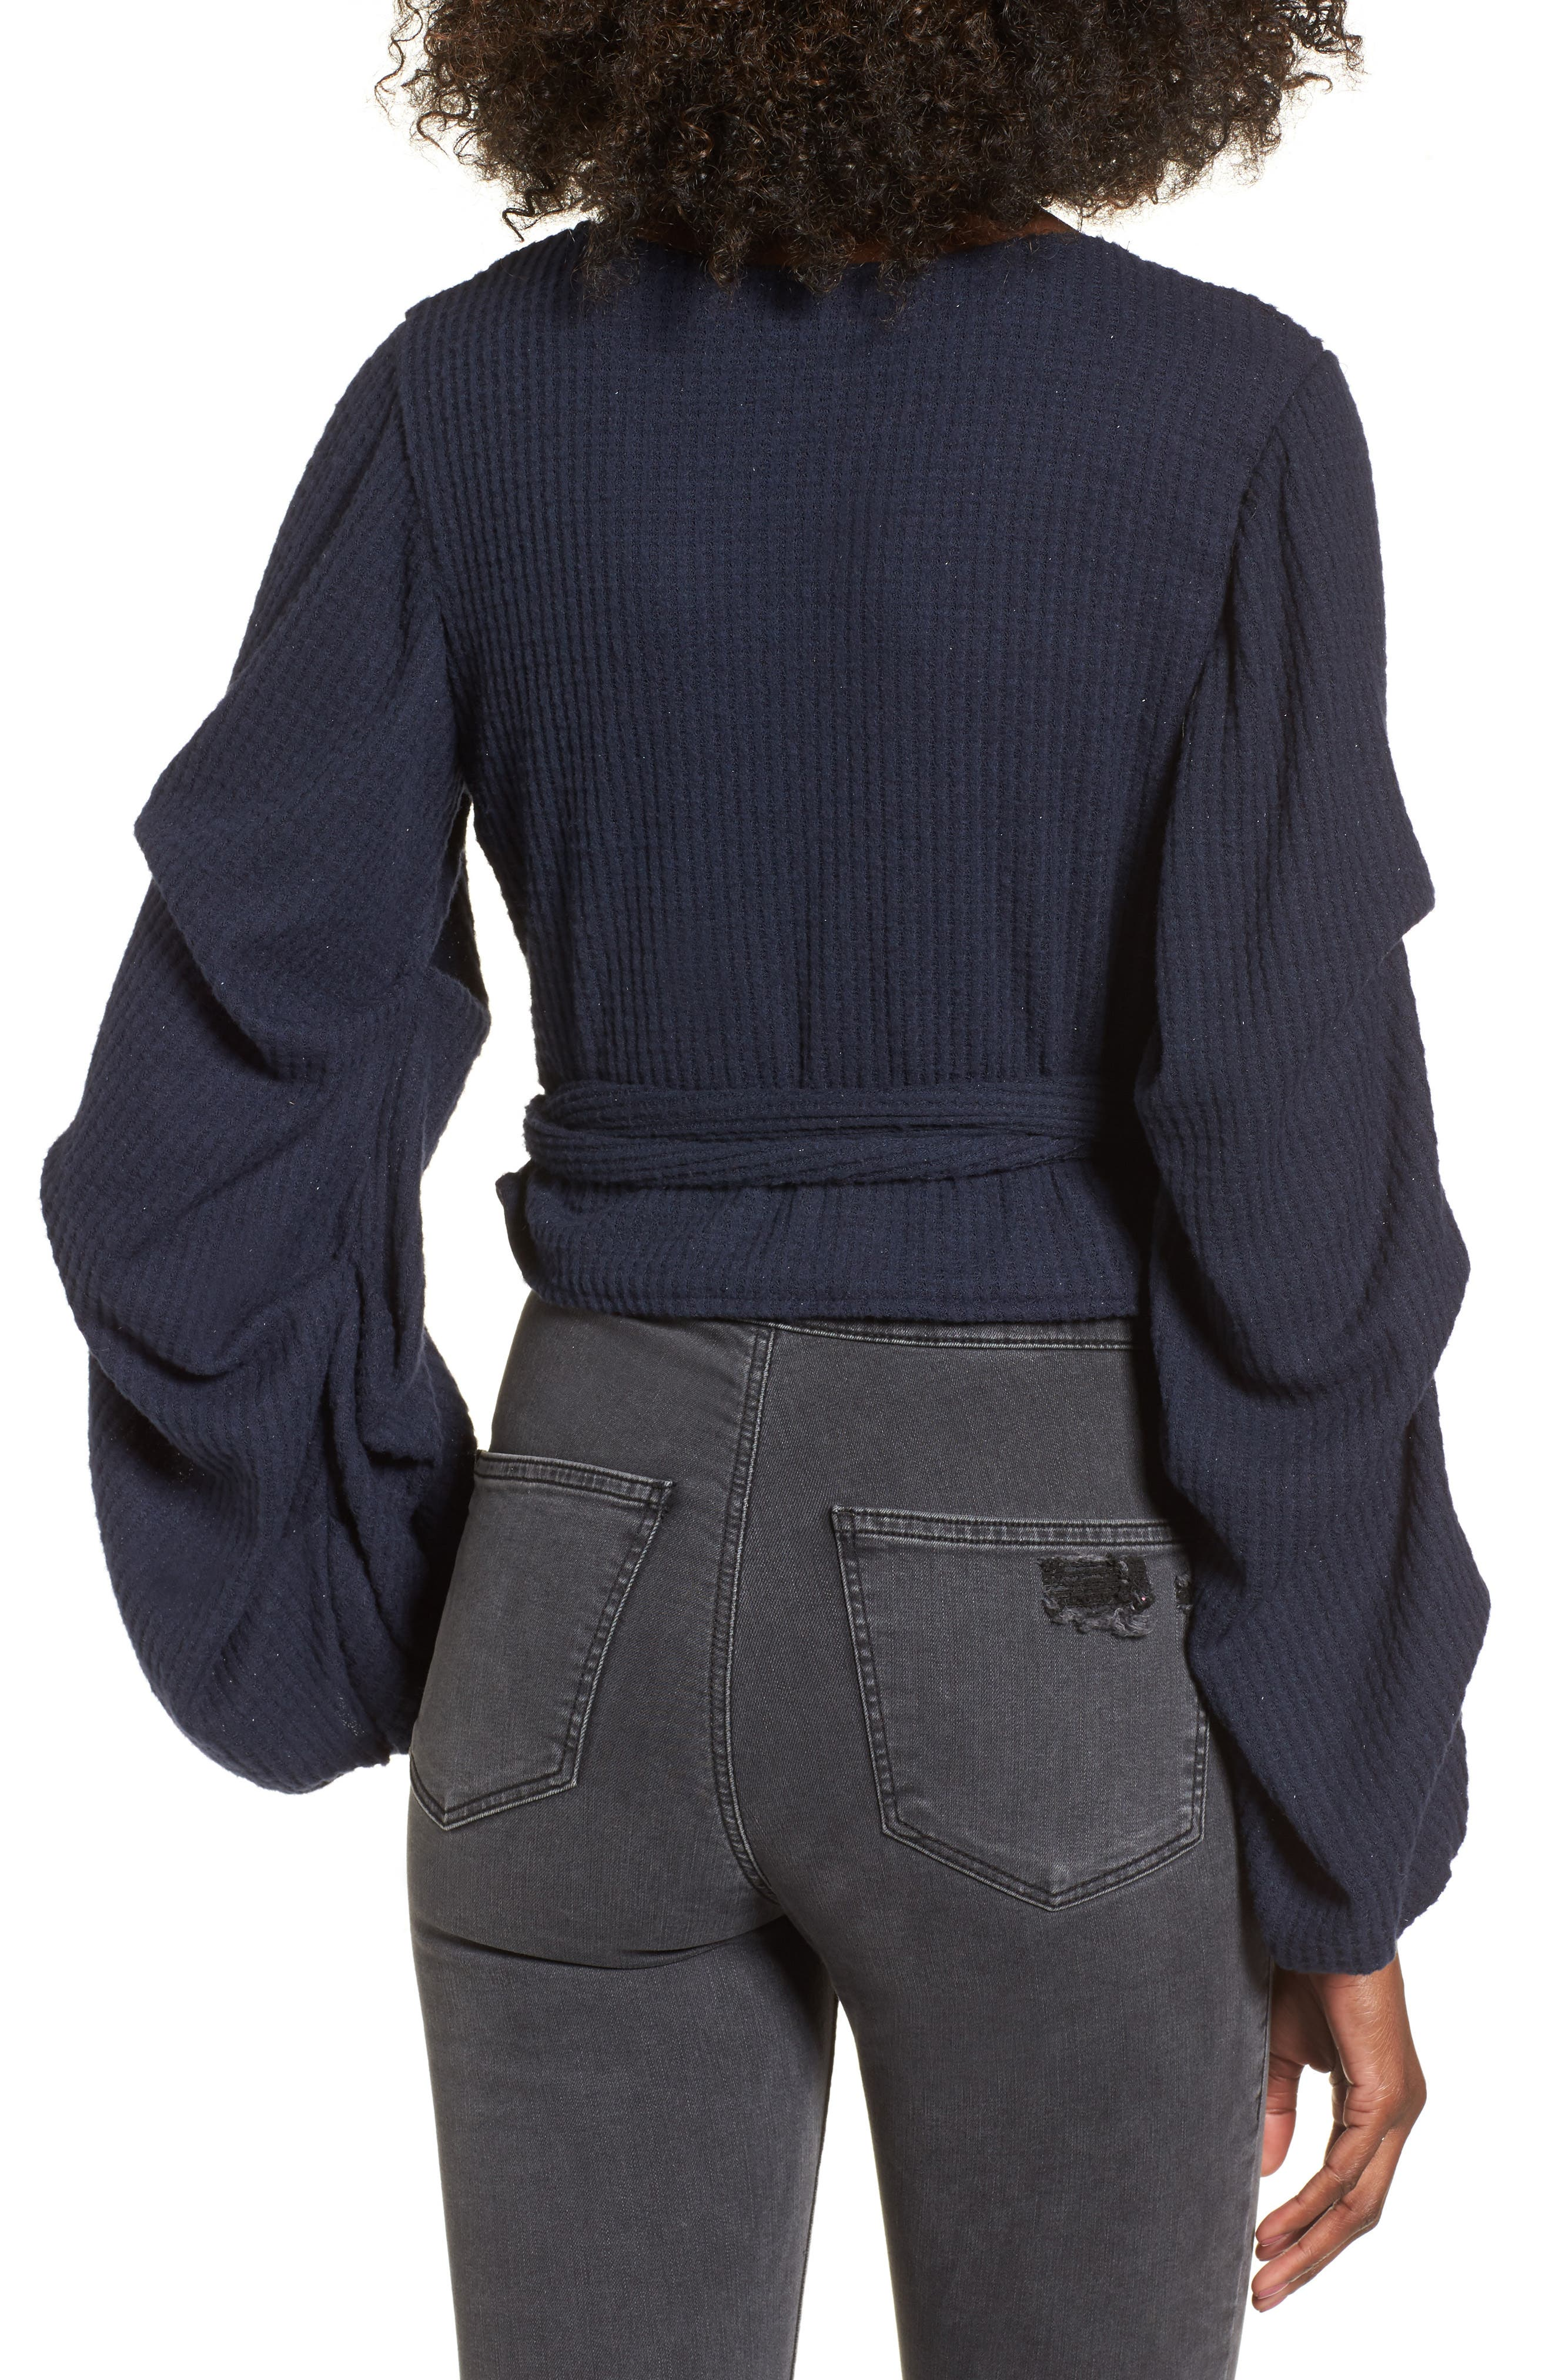 Wrap Sweater,                             Alternate thumbnail 2, color,                             Navy